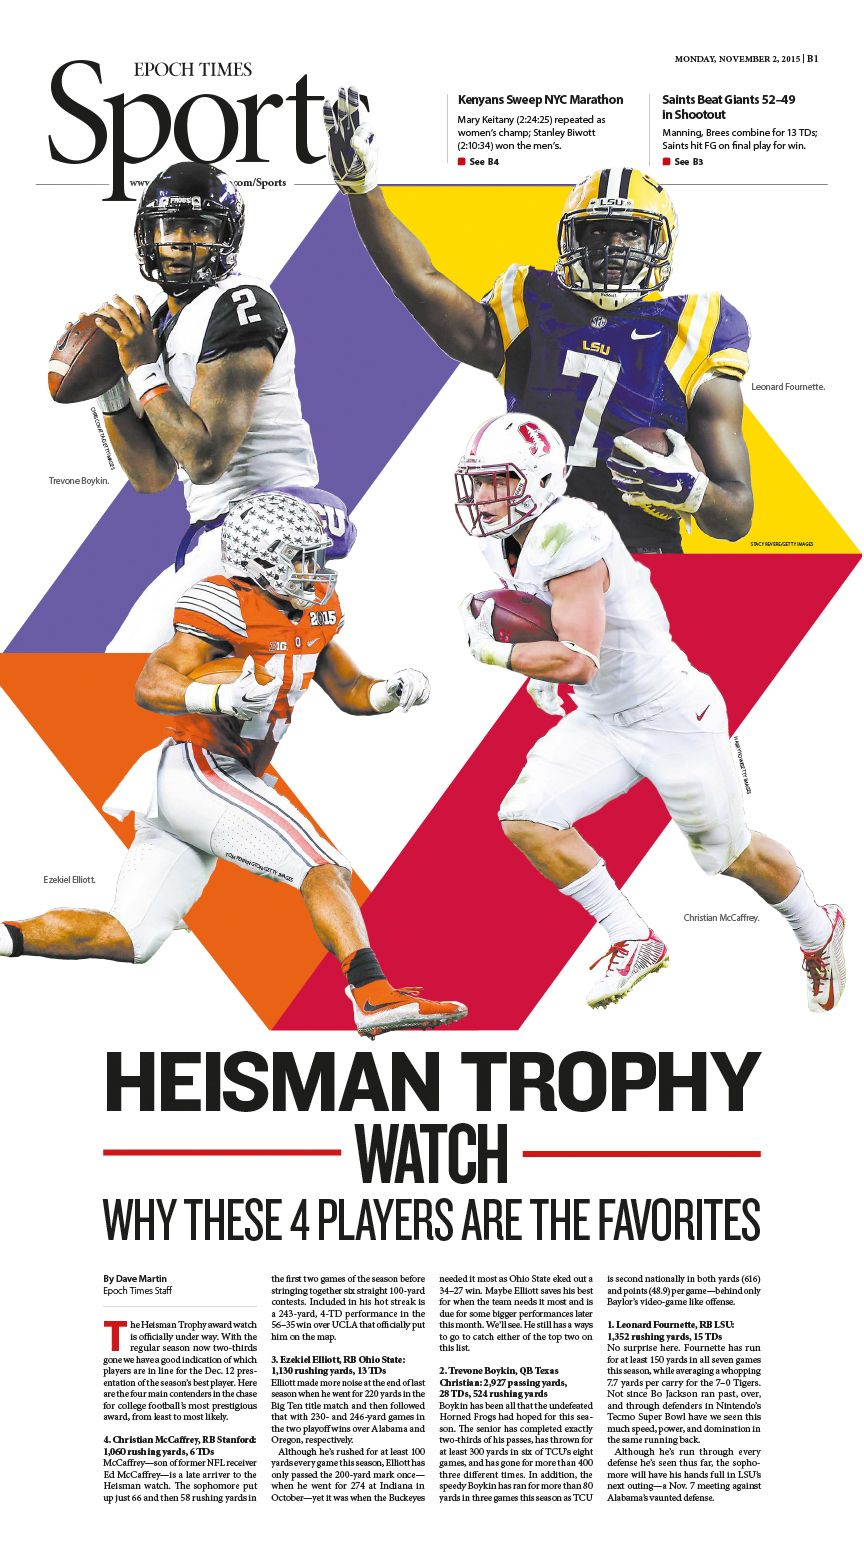 Heisman Trophy Watch Why These 4 Players Are the